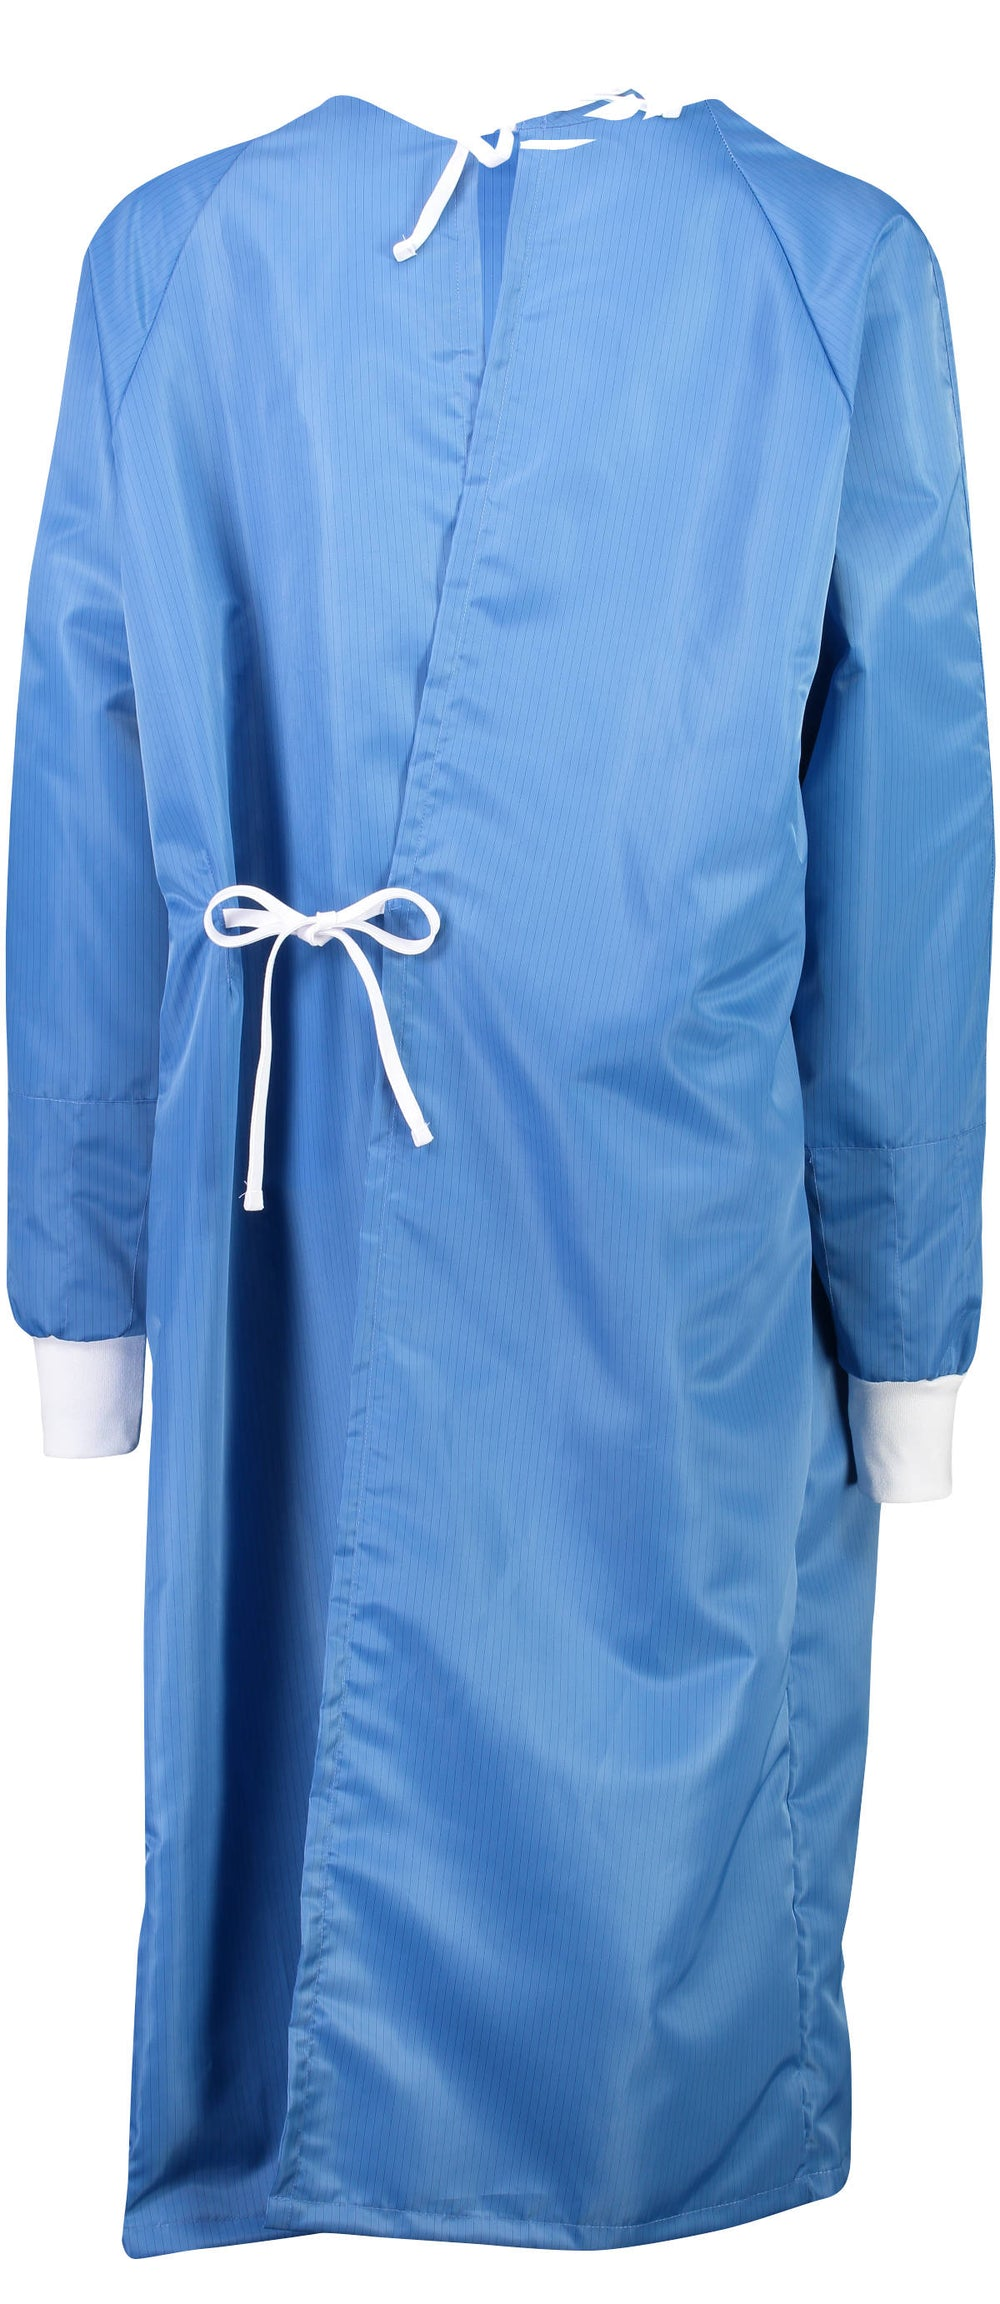 Washable Vet Gown Long Sleeve